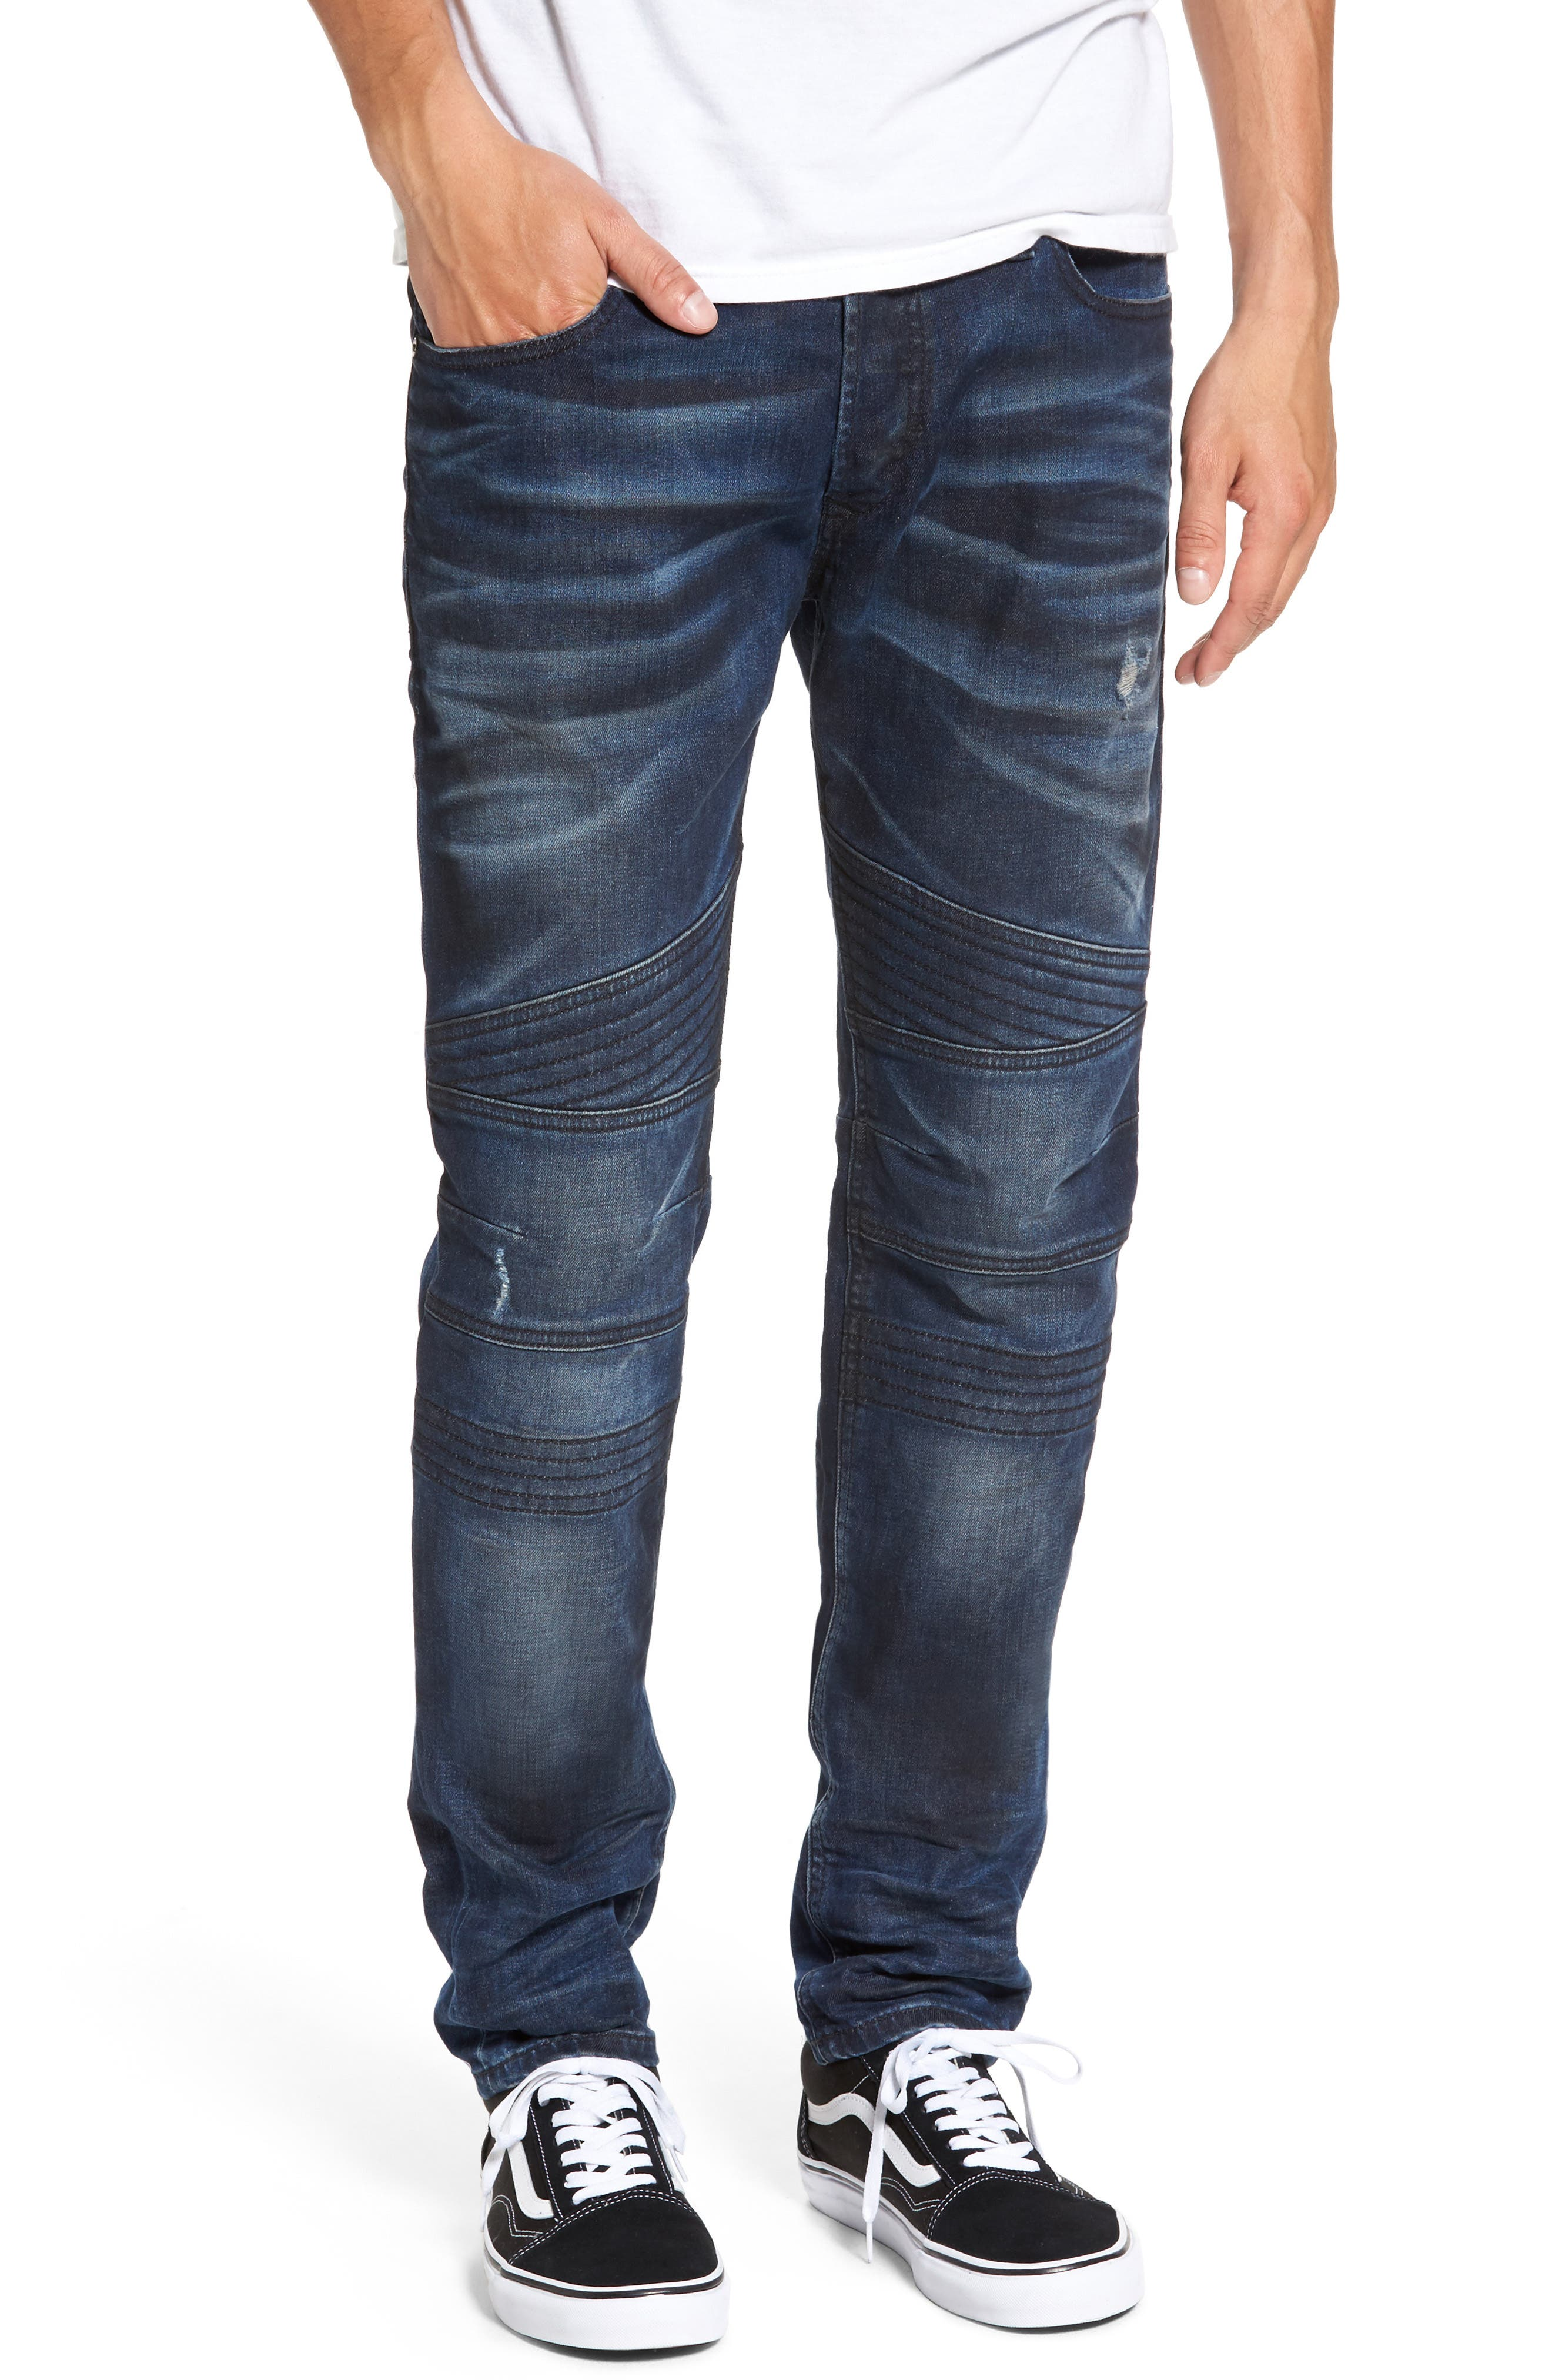 Fourk Skinny Fit Jeans,                         Main,                         color, 400